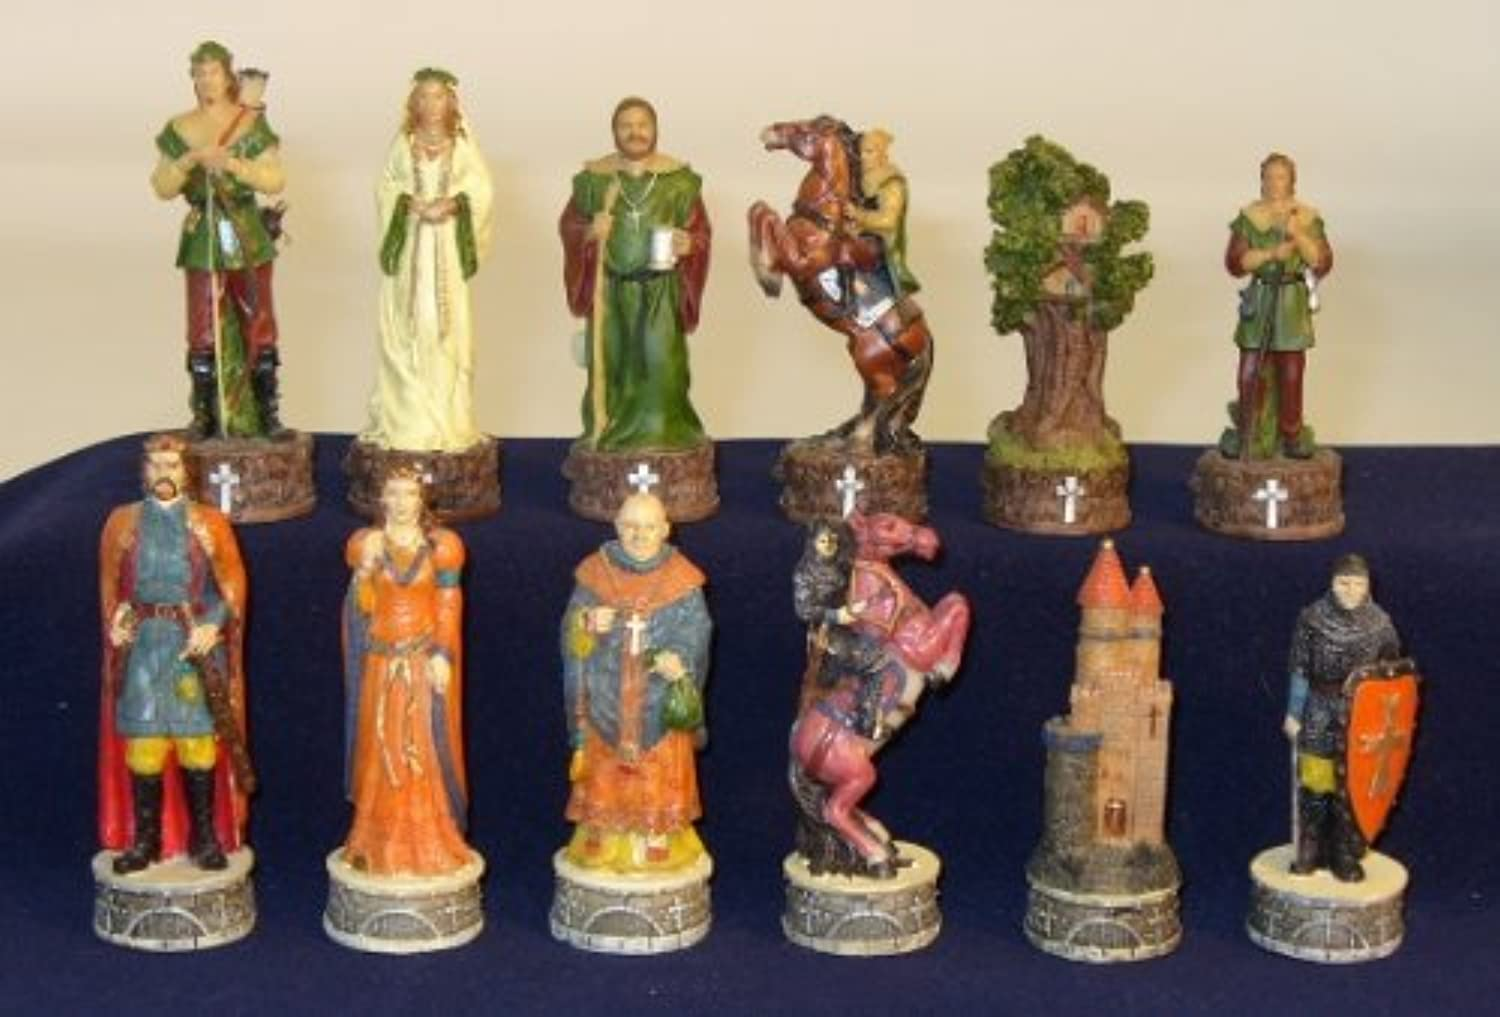 Robin Hood Painted Resin Chess Pieces by World Wise [並行輸入品]